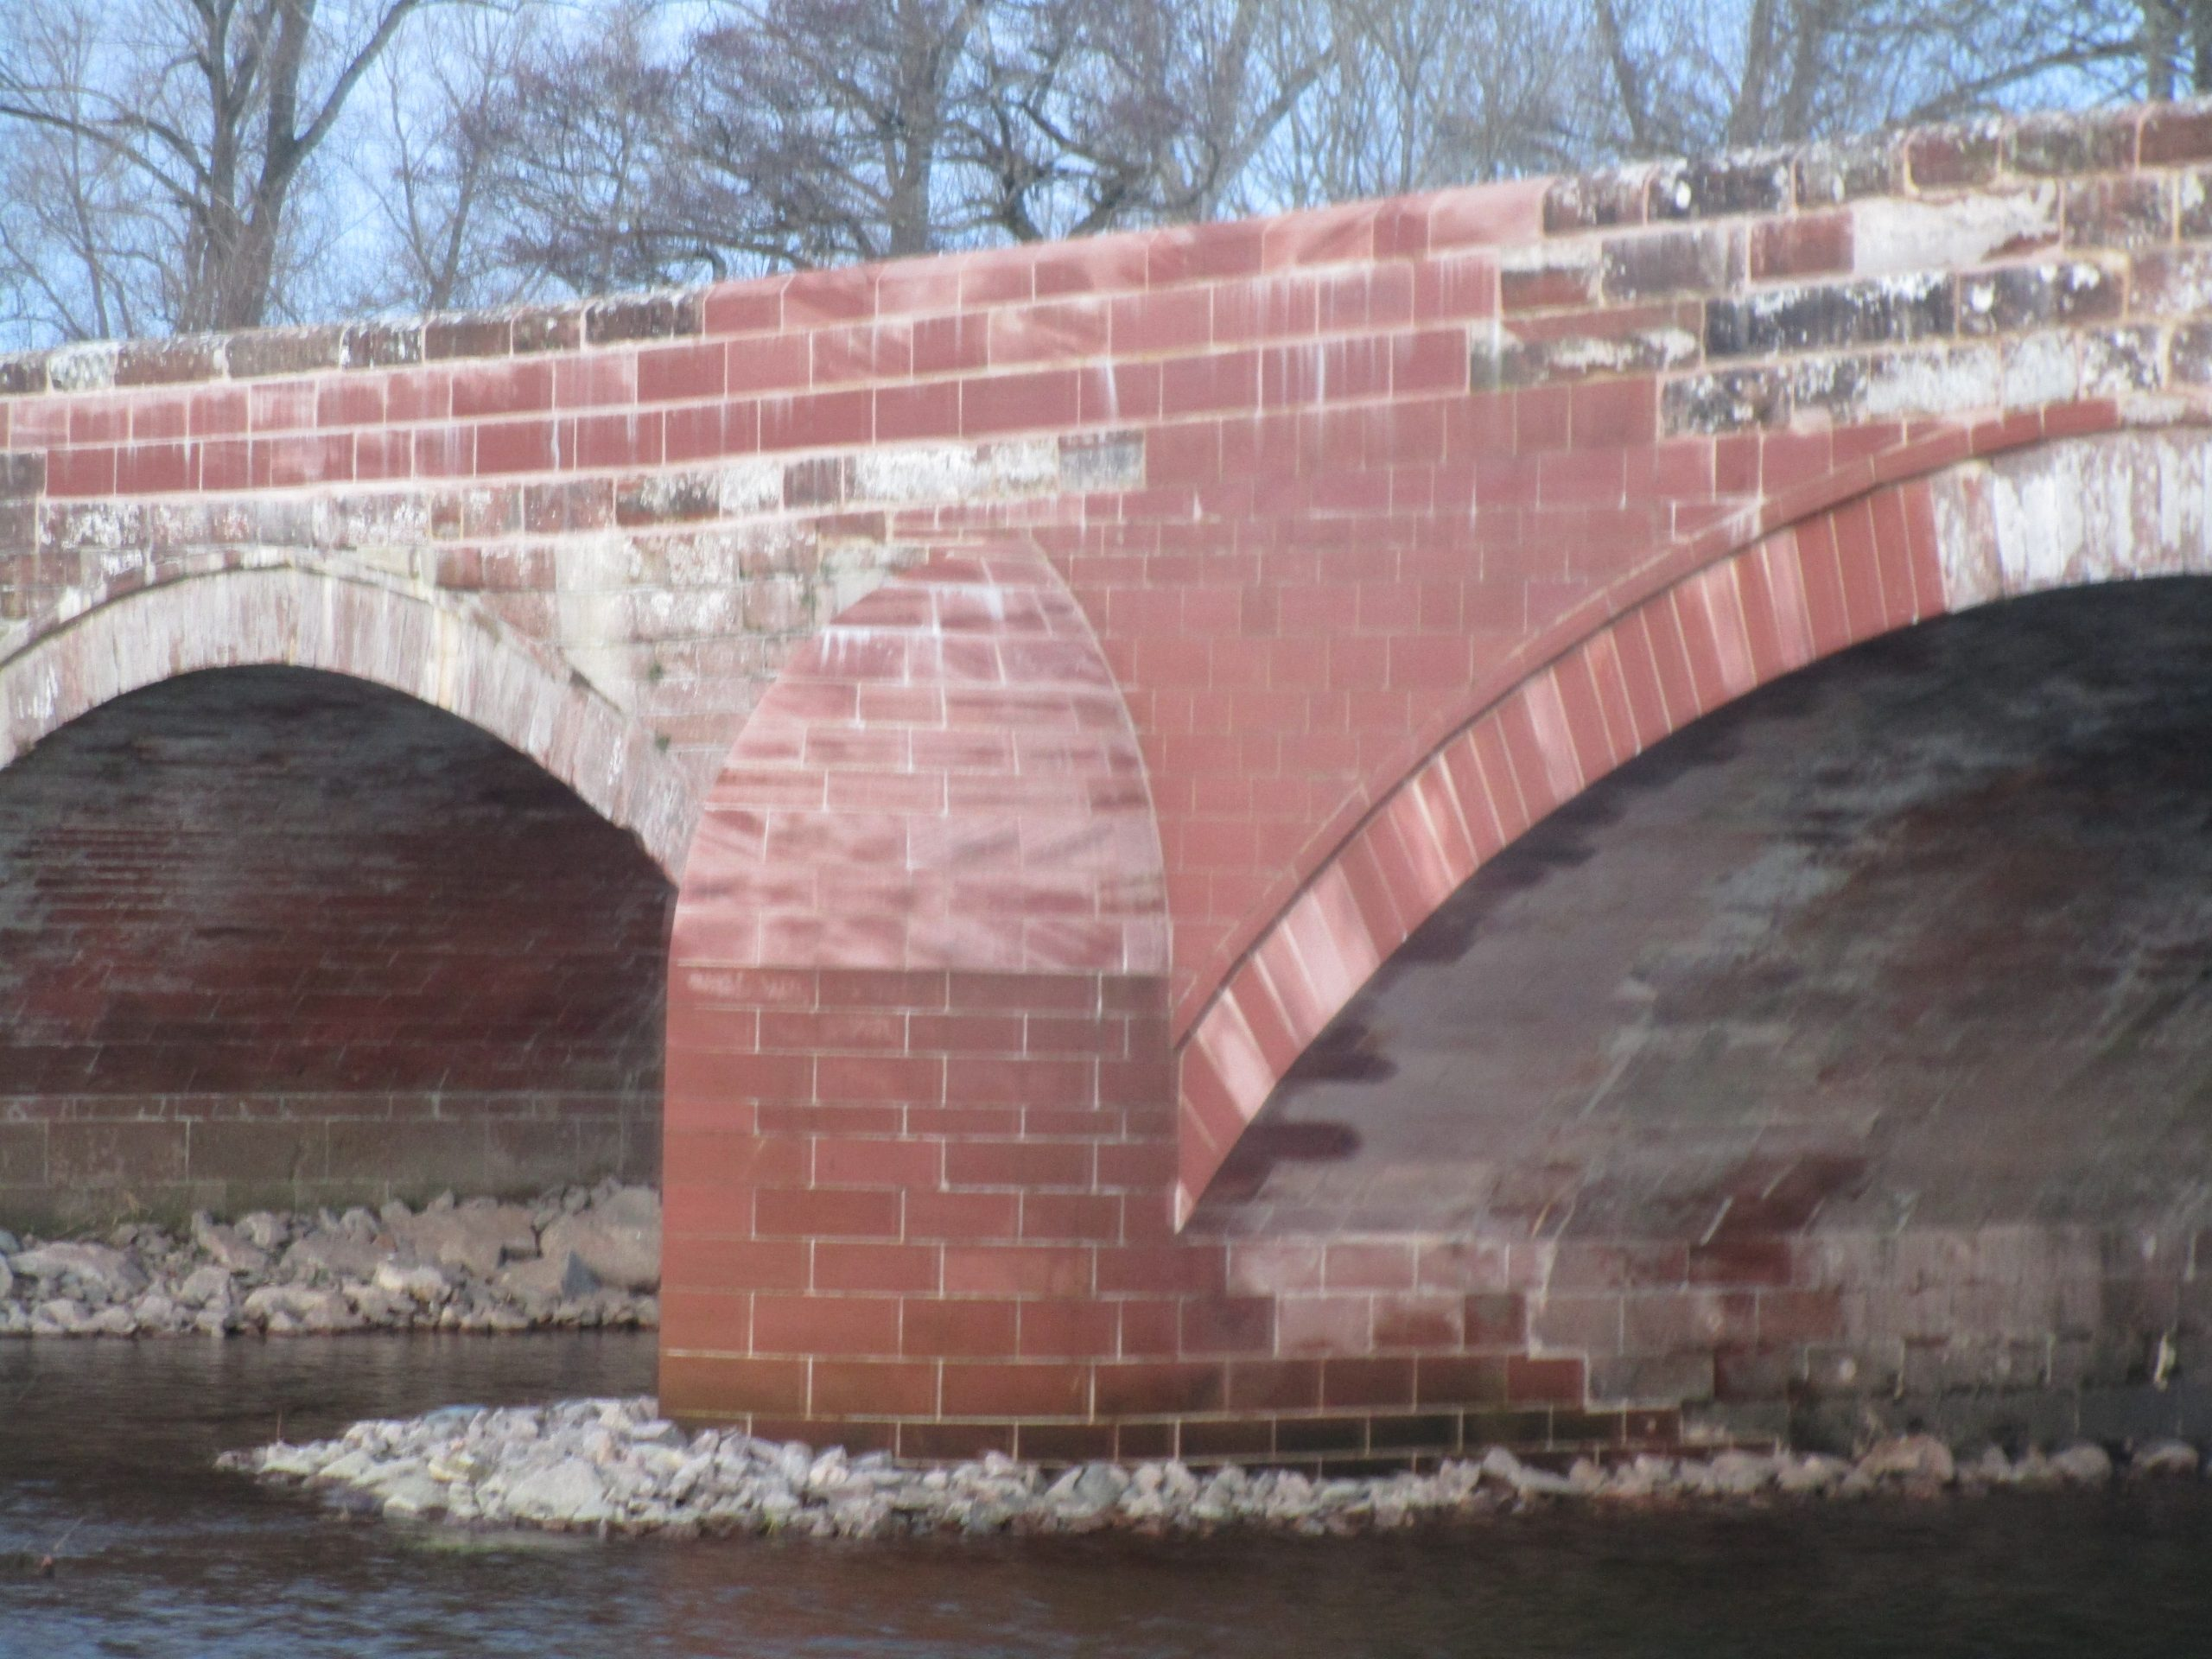 Lazonby Sandstone Bridge Repairs by Cumbrian Stone